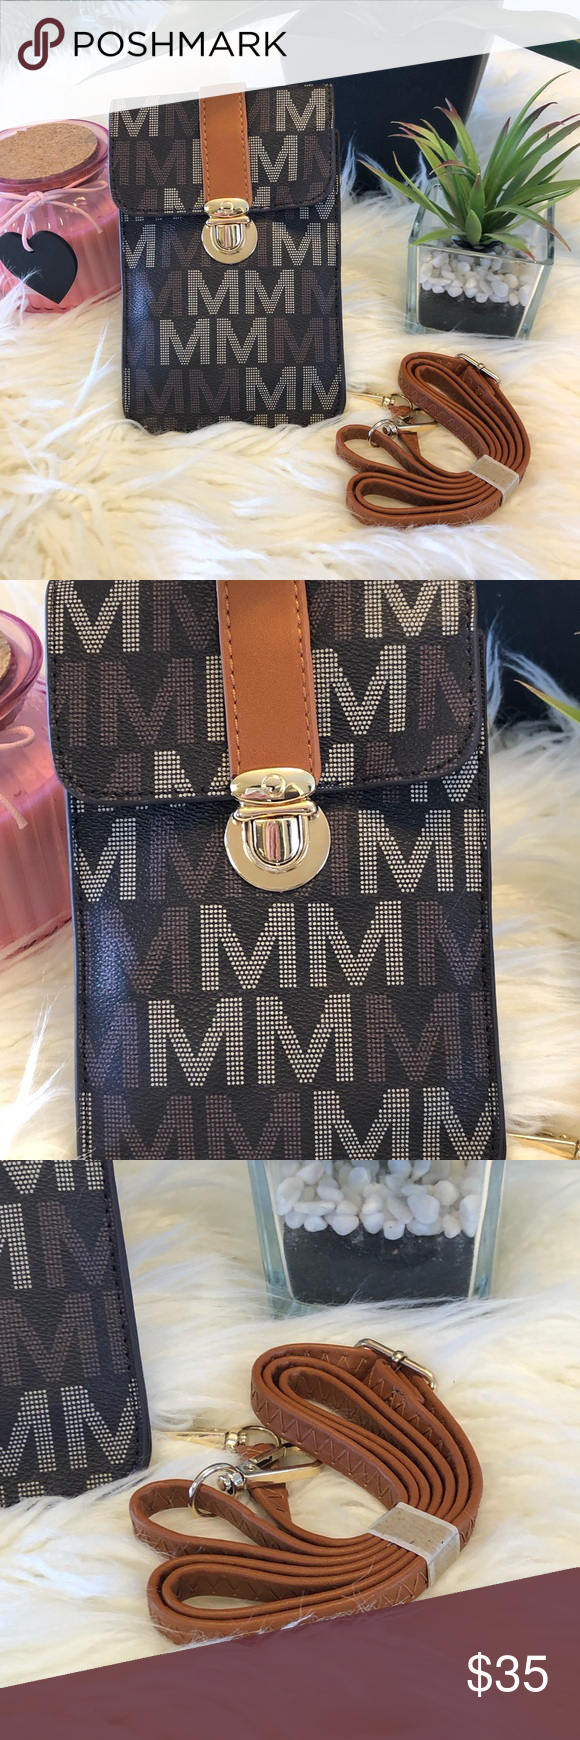 103578bc9 Signature M Lulu XL Phone/Wallet Crossbody Bag Keep your smart phone safe  while out